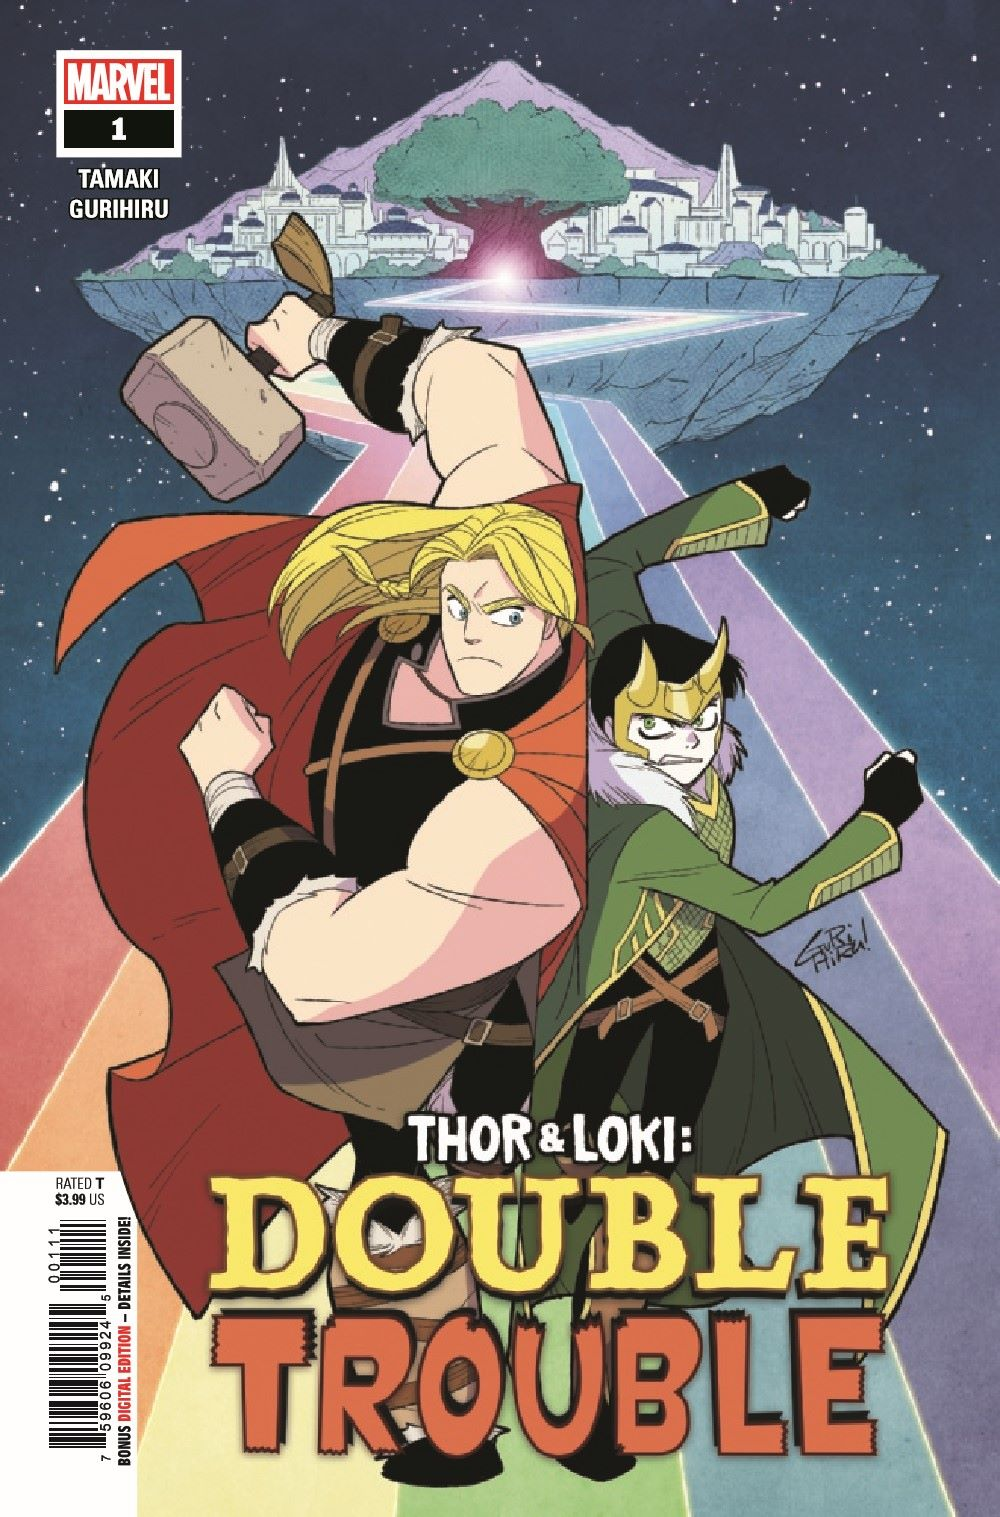 THORLOKIDT2020001_Preview-1 ComicList Previews: THOR AND LOKI DOUBLE TROUBLE #1 (OF 4)